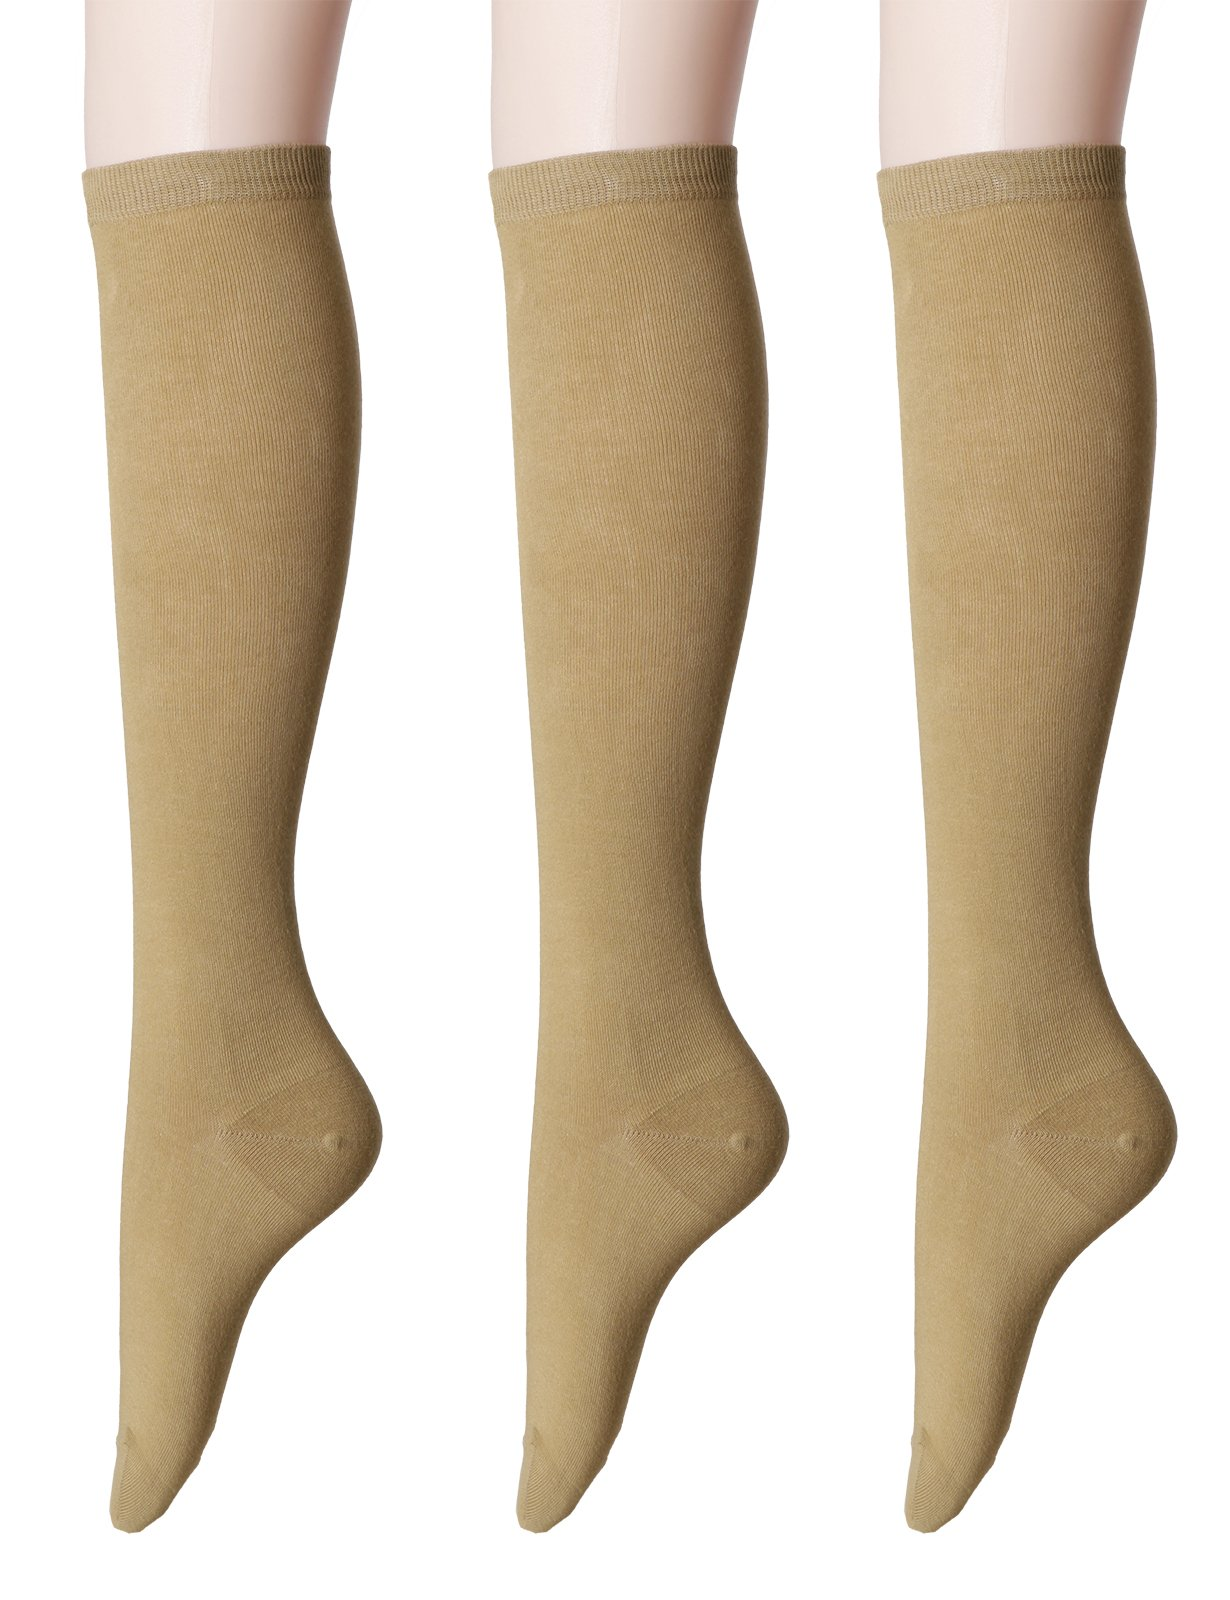 OSABASA Womens Casual Knee High Socks 3Pairs 1 Set with Cute Colorful Pattern(SET3KWMS0192-SKINBEIGE)